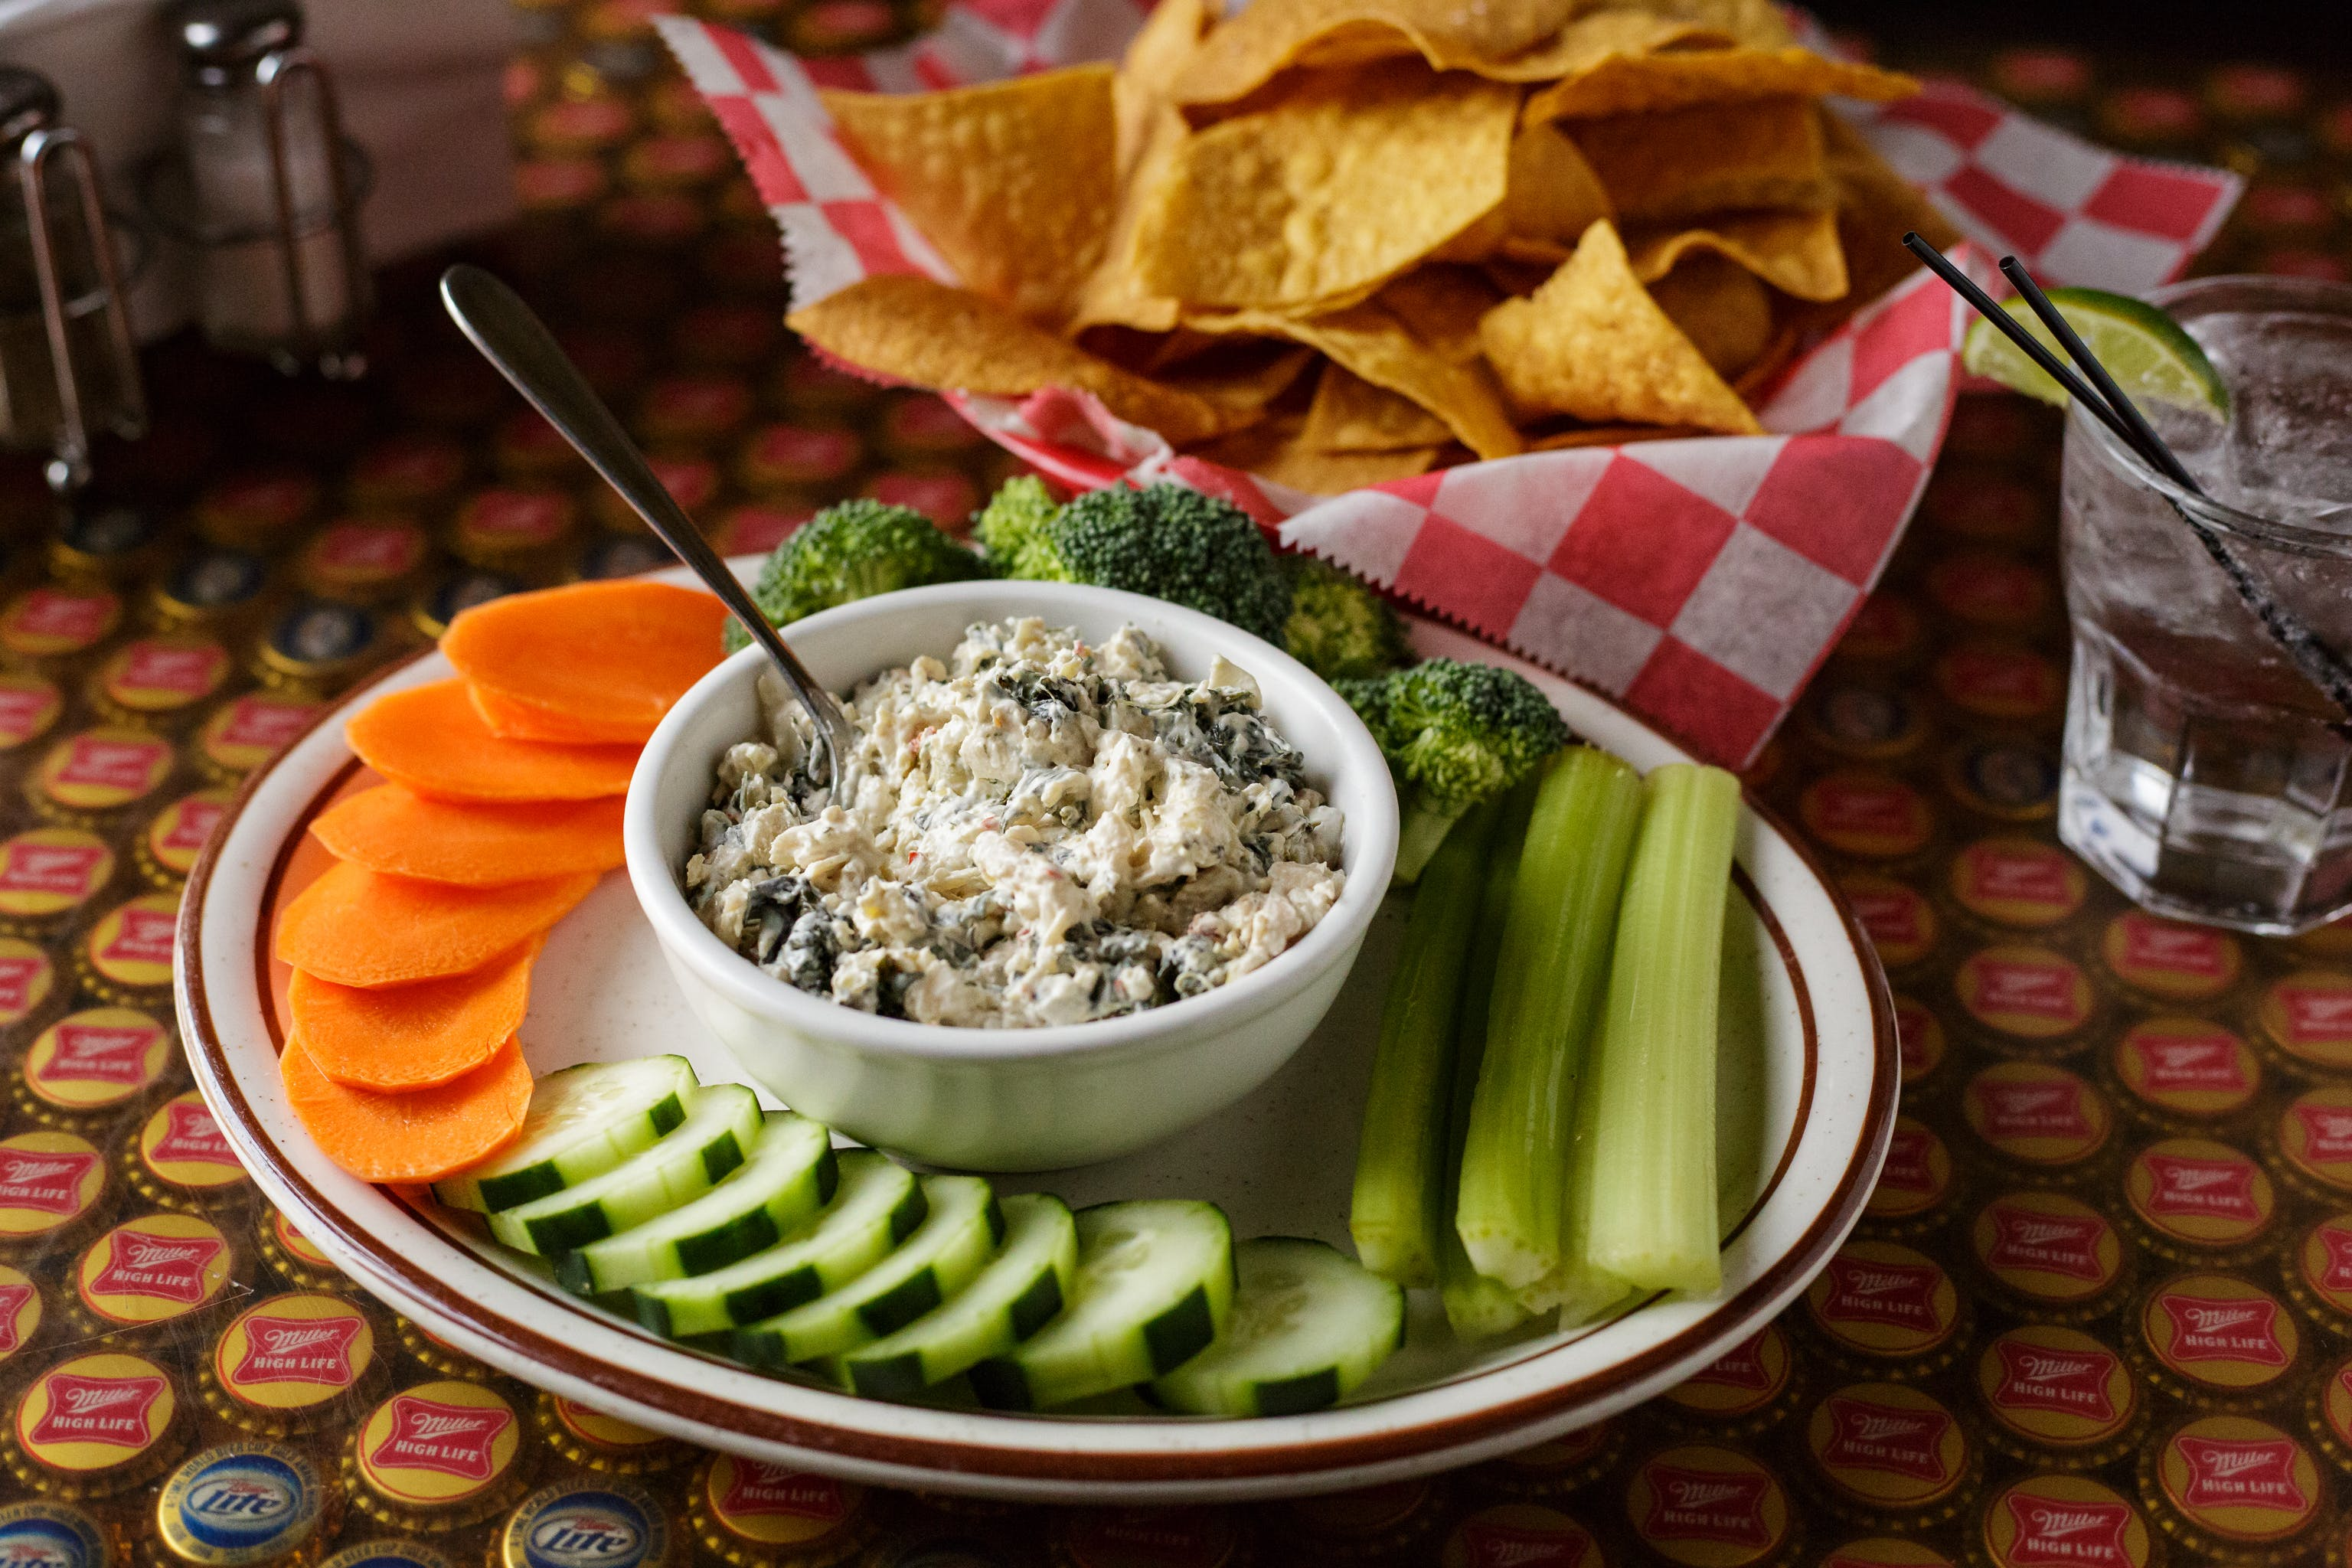 Spinach Artichoke Dip from Vintage Spirits & Grill in Madison, WI